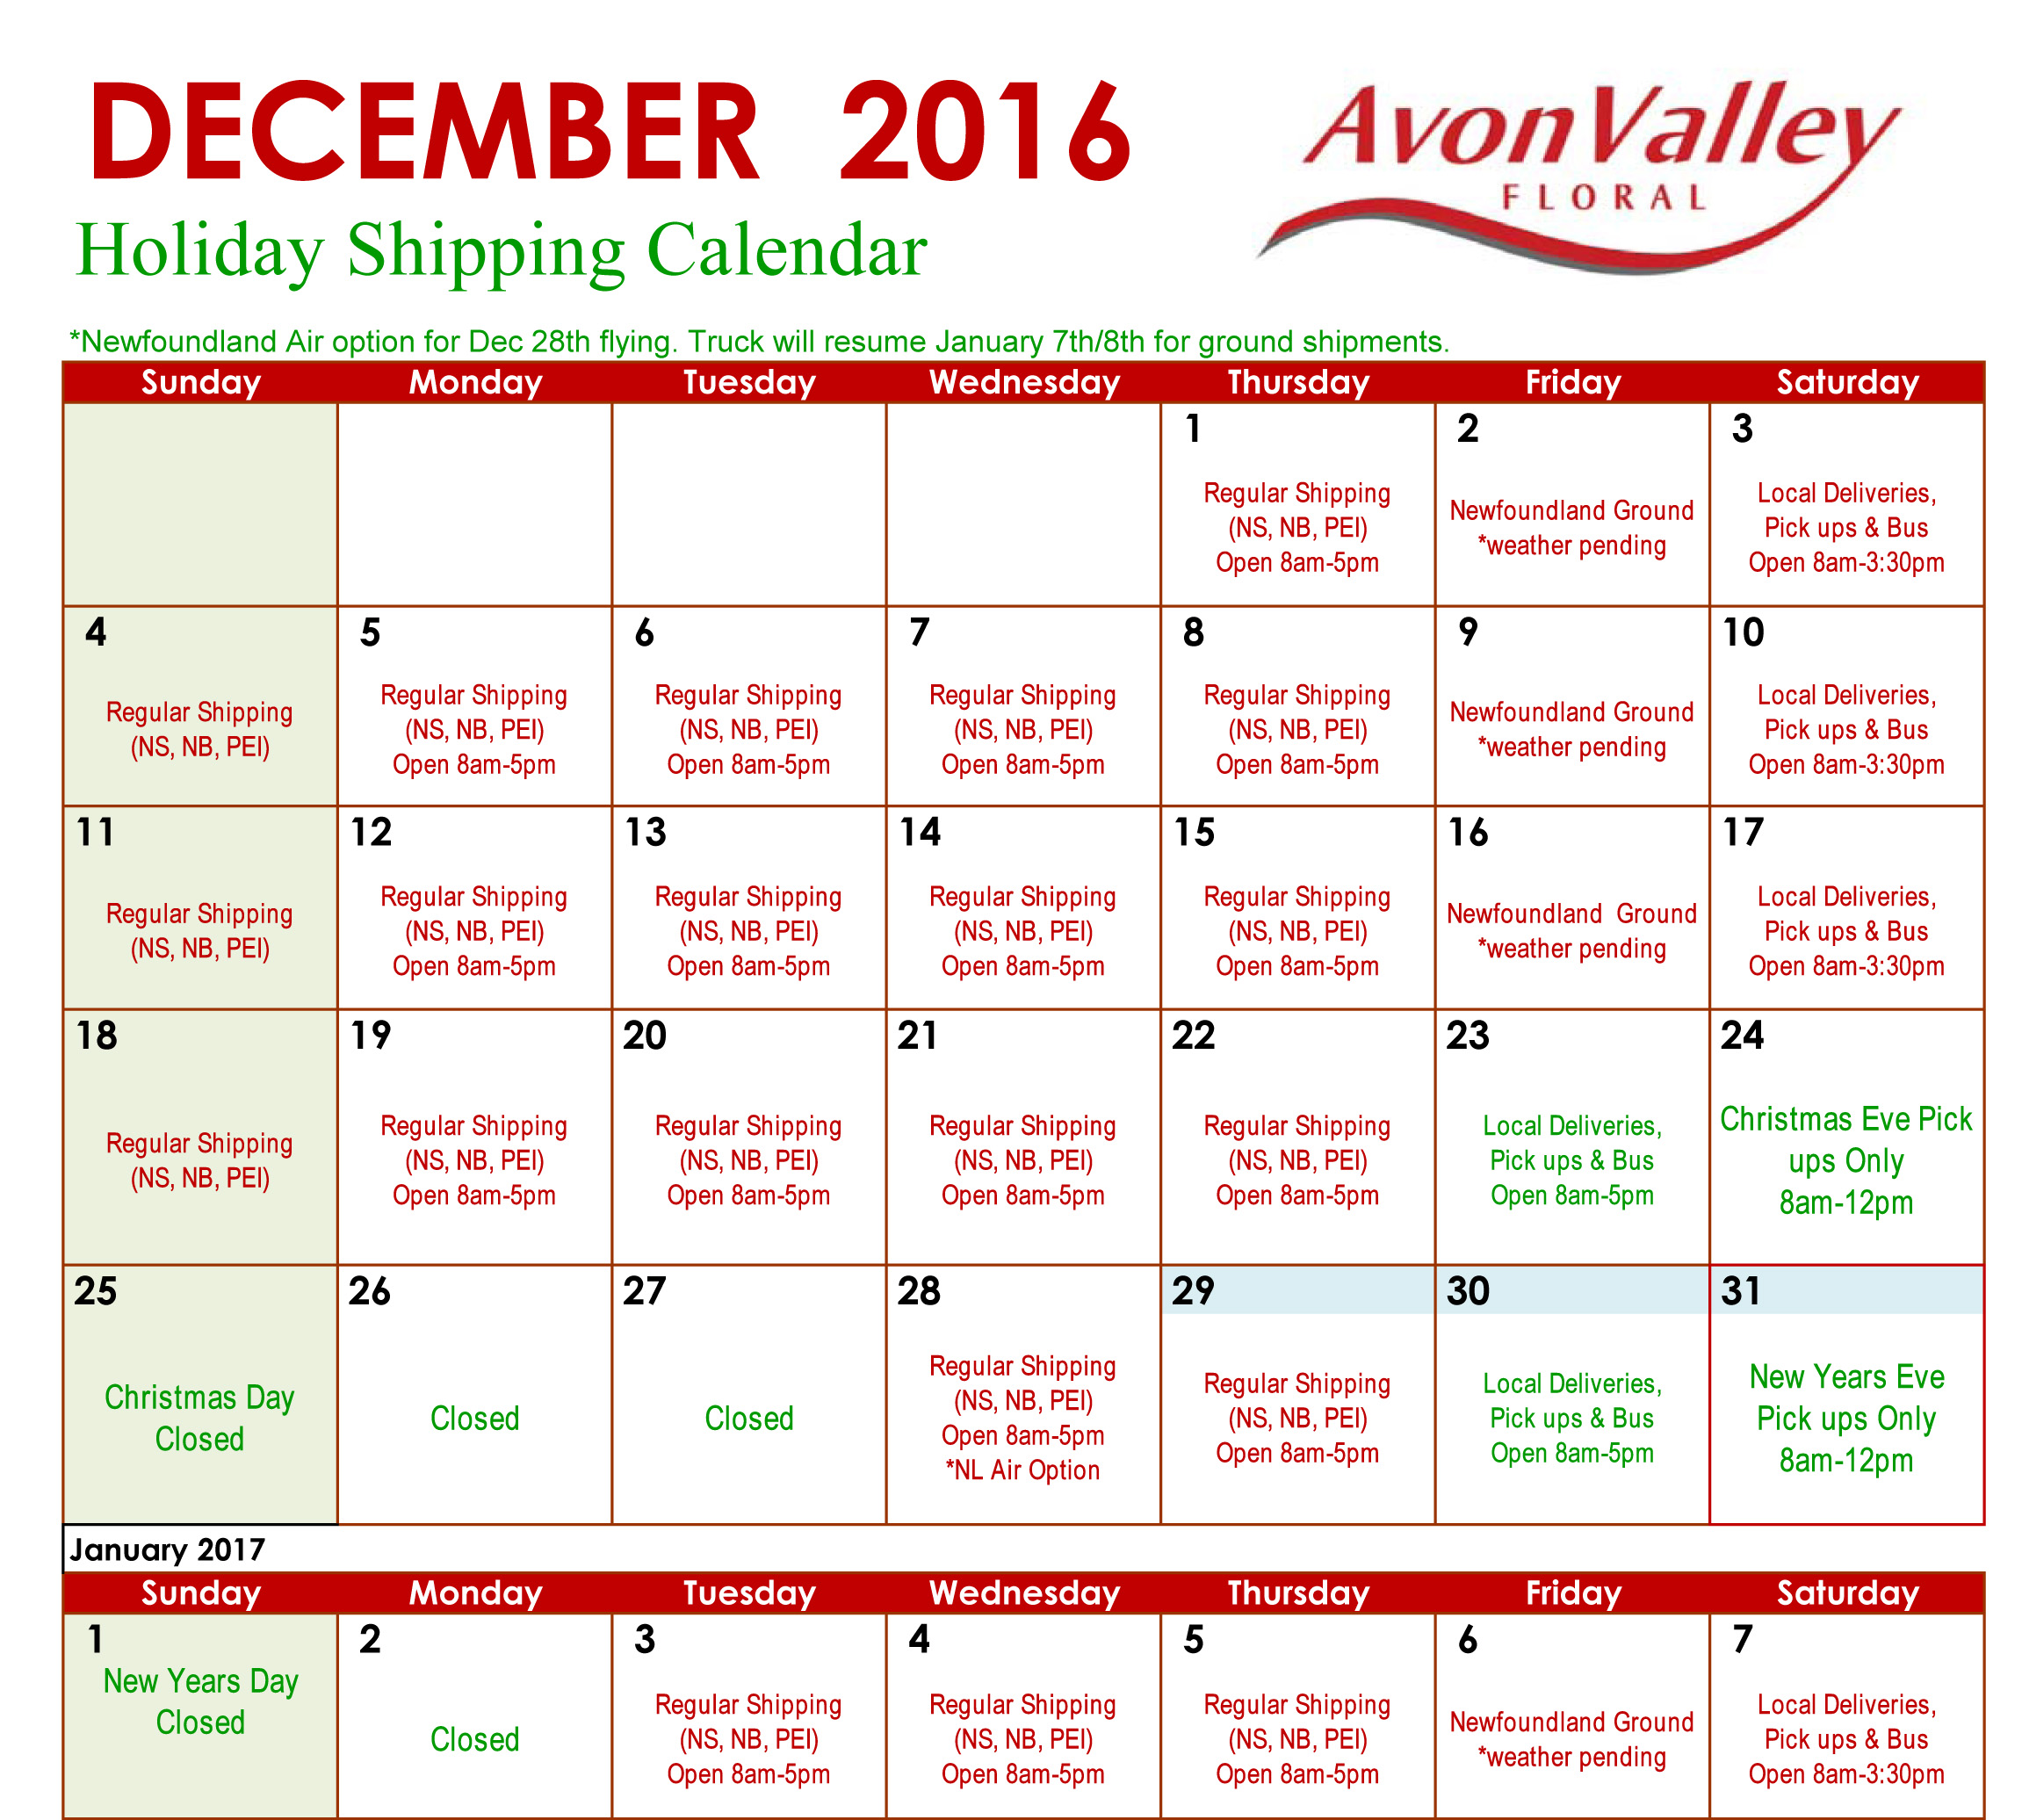 Holiday Shipping Calendar 2016 | Avon Valley Floral Holiday Shipping ...